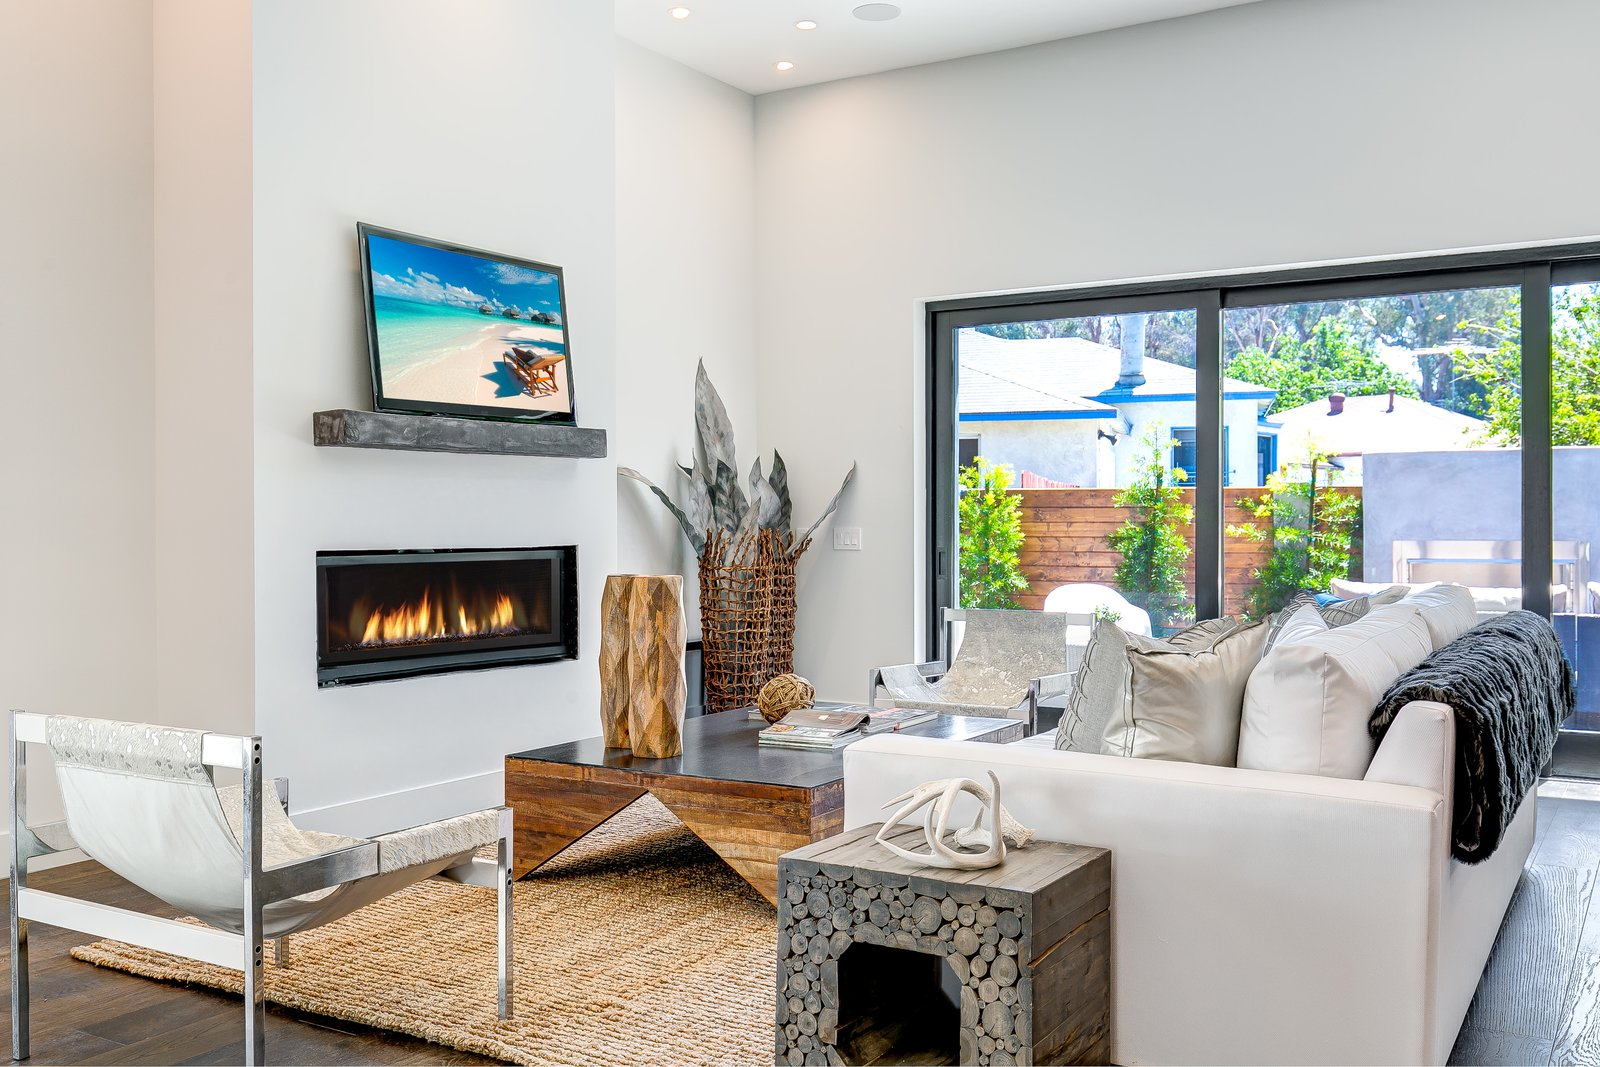 Chair, Sofa, Coffee Tables, End Tables, Medium Hardwood Floor, Rug Floor, Standard Layout Fireplace, Gas Burning Fireplace, Ceiling Lighting, and Office  2701 Armacost